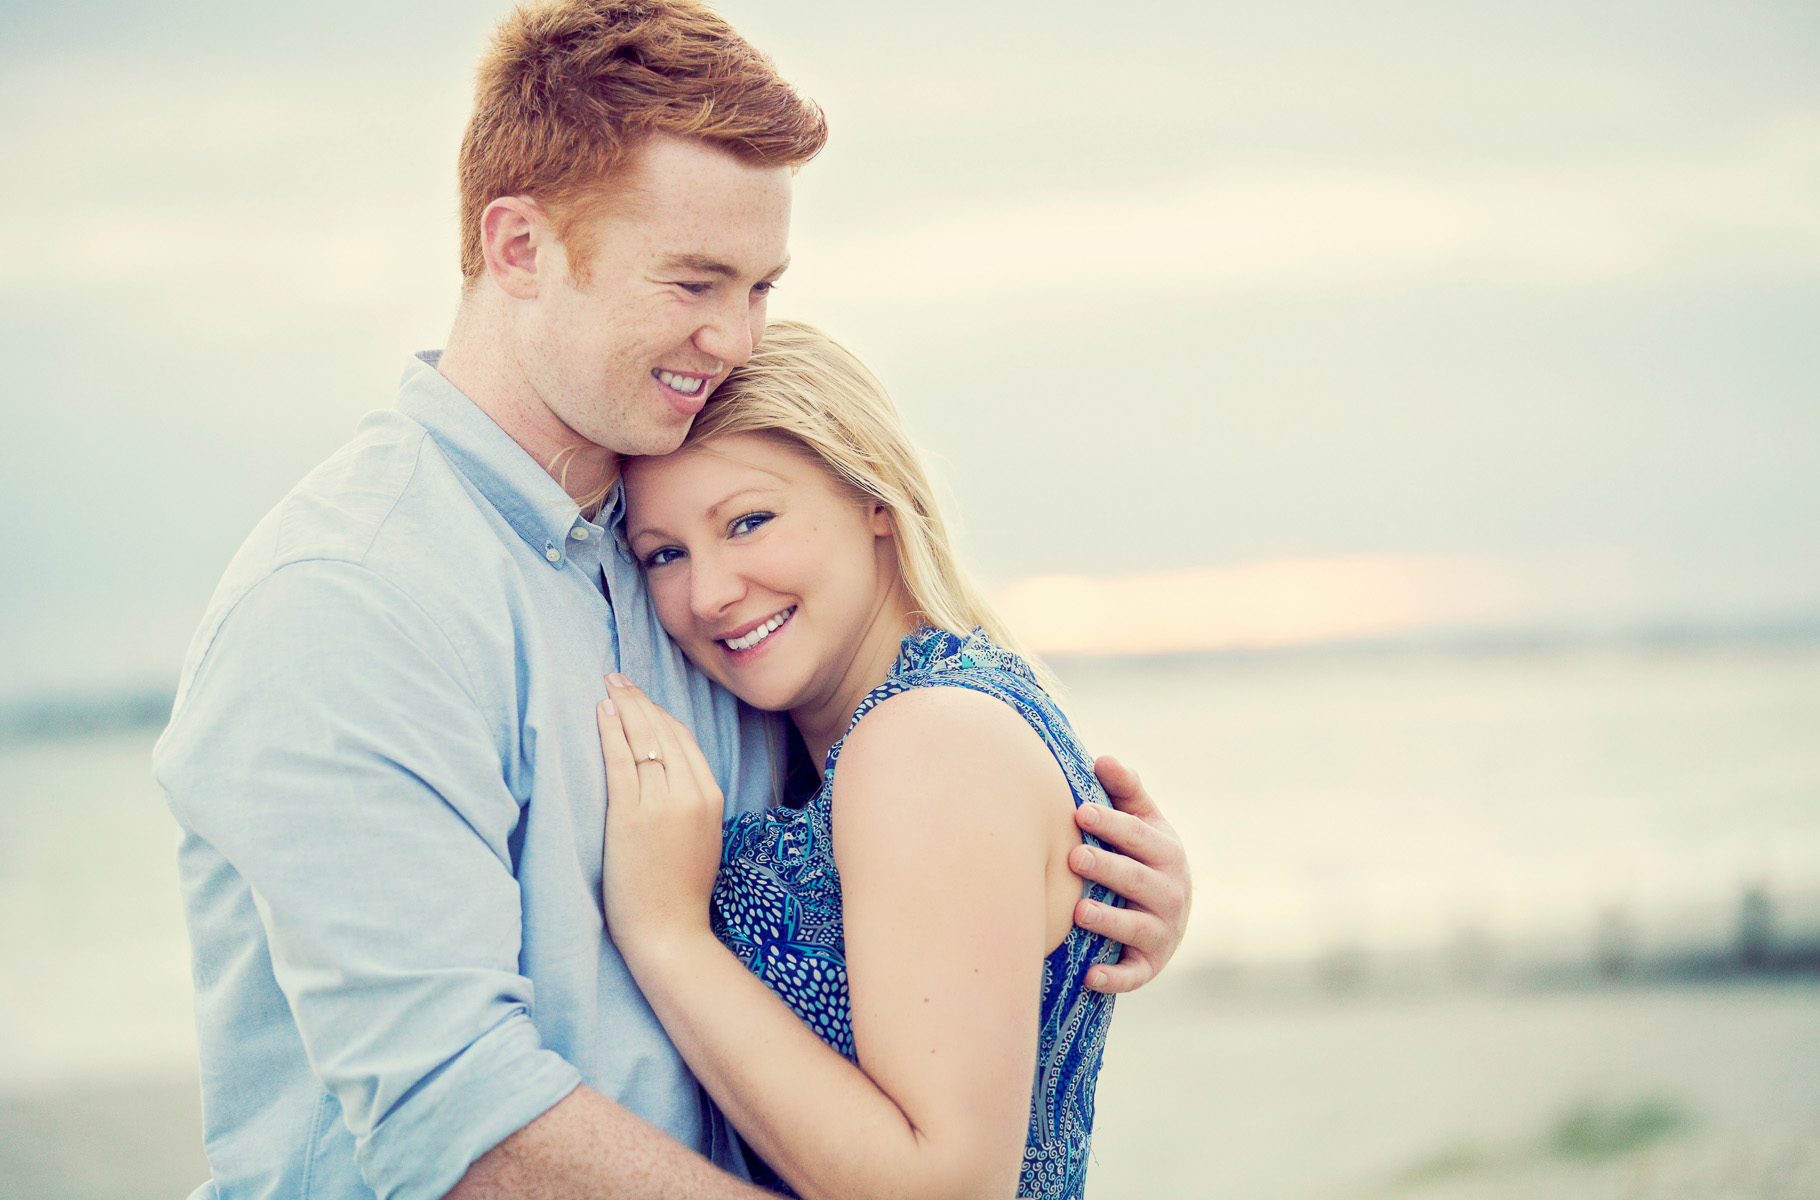 Engagement-Love-Photographer-Winchester-Hampshire-19